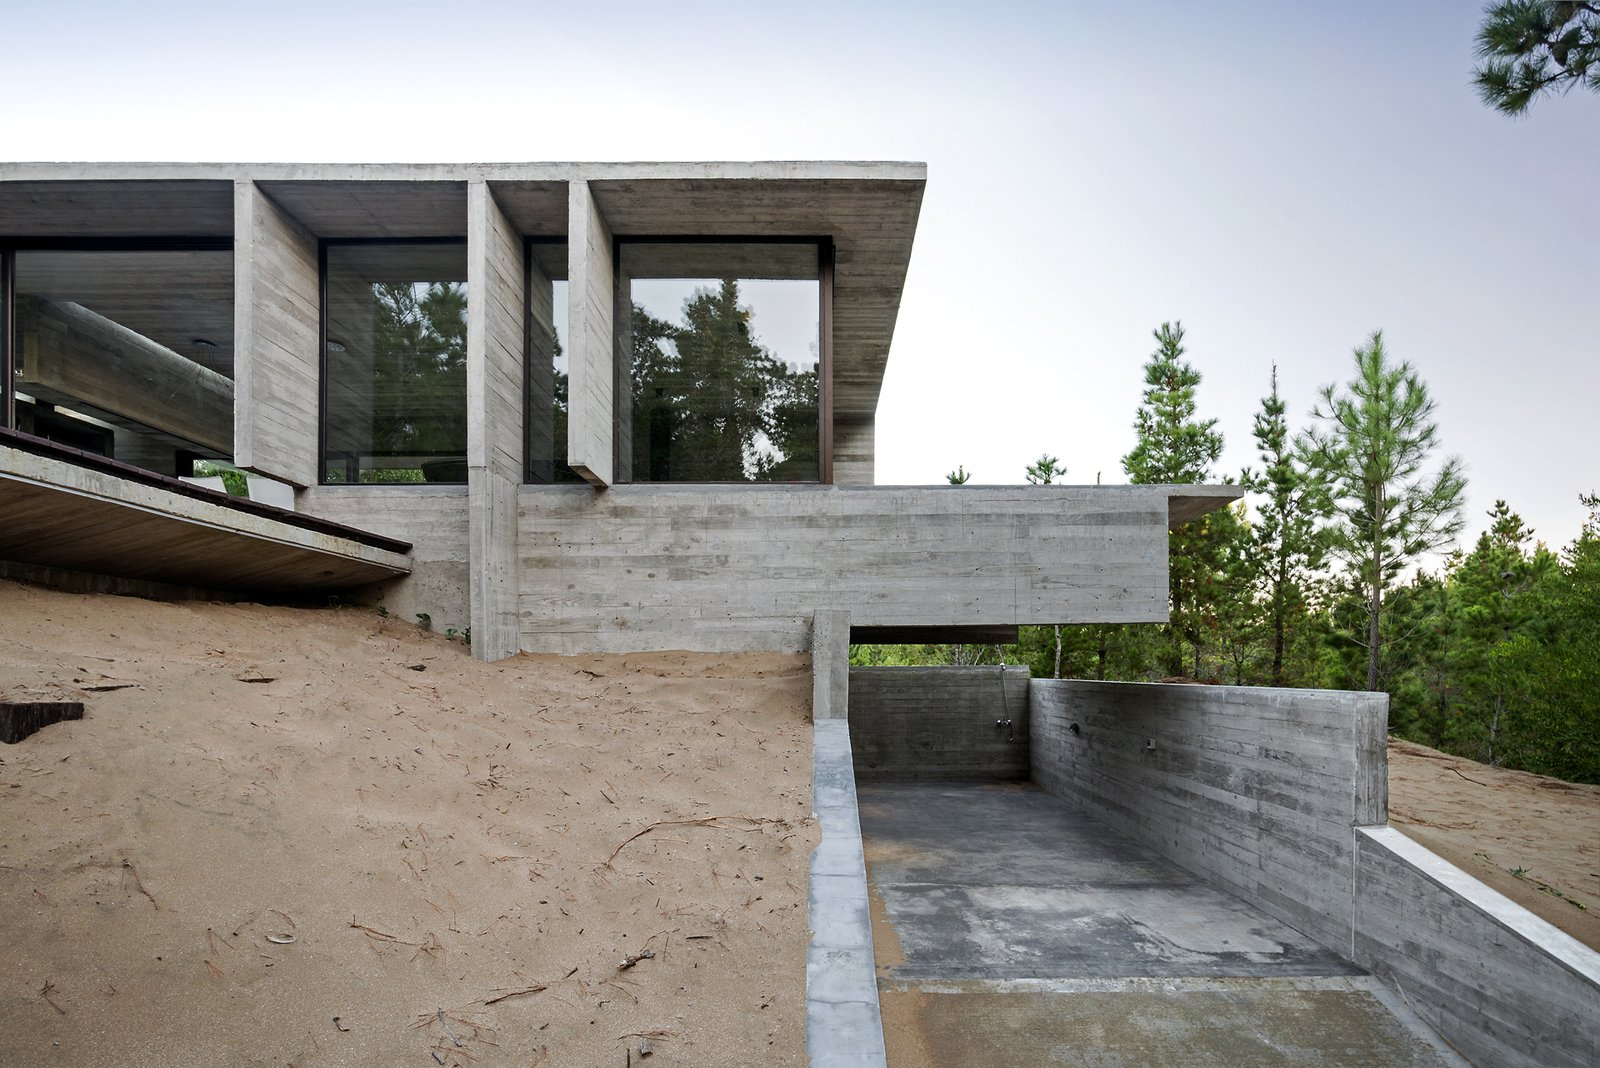 Exterior, Concrete Siding Material, Glass Siding Material, House Building Type, Beach House Building Type, and Metal Siding Material Wein House - Besonías Almeida arquitectos  Wein House by Besonías Almeida arquitectos